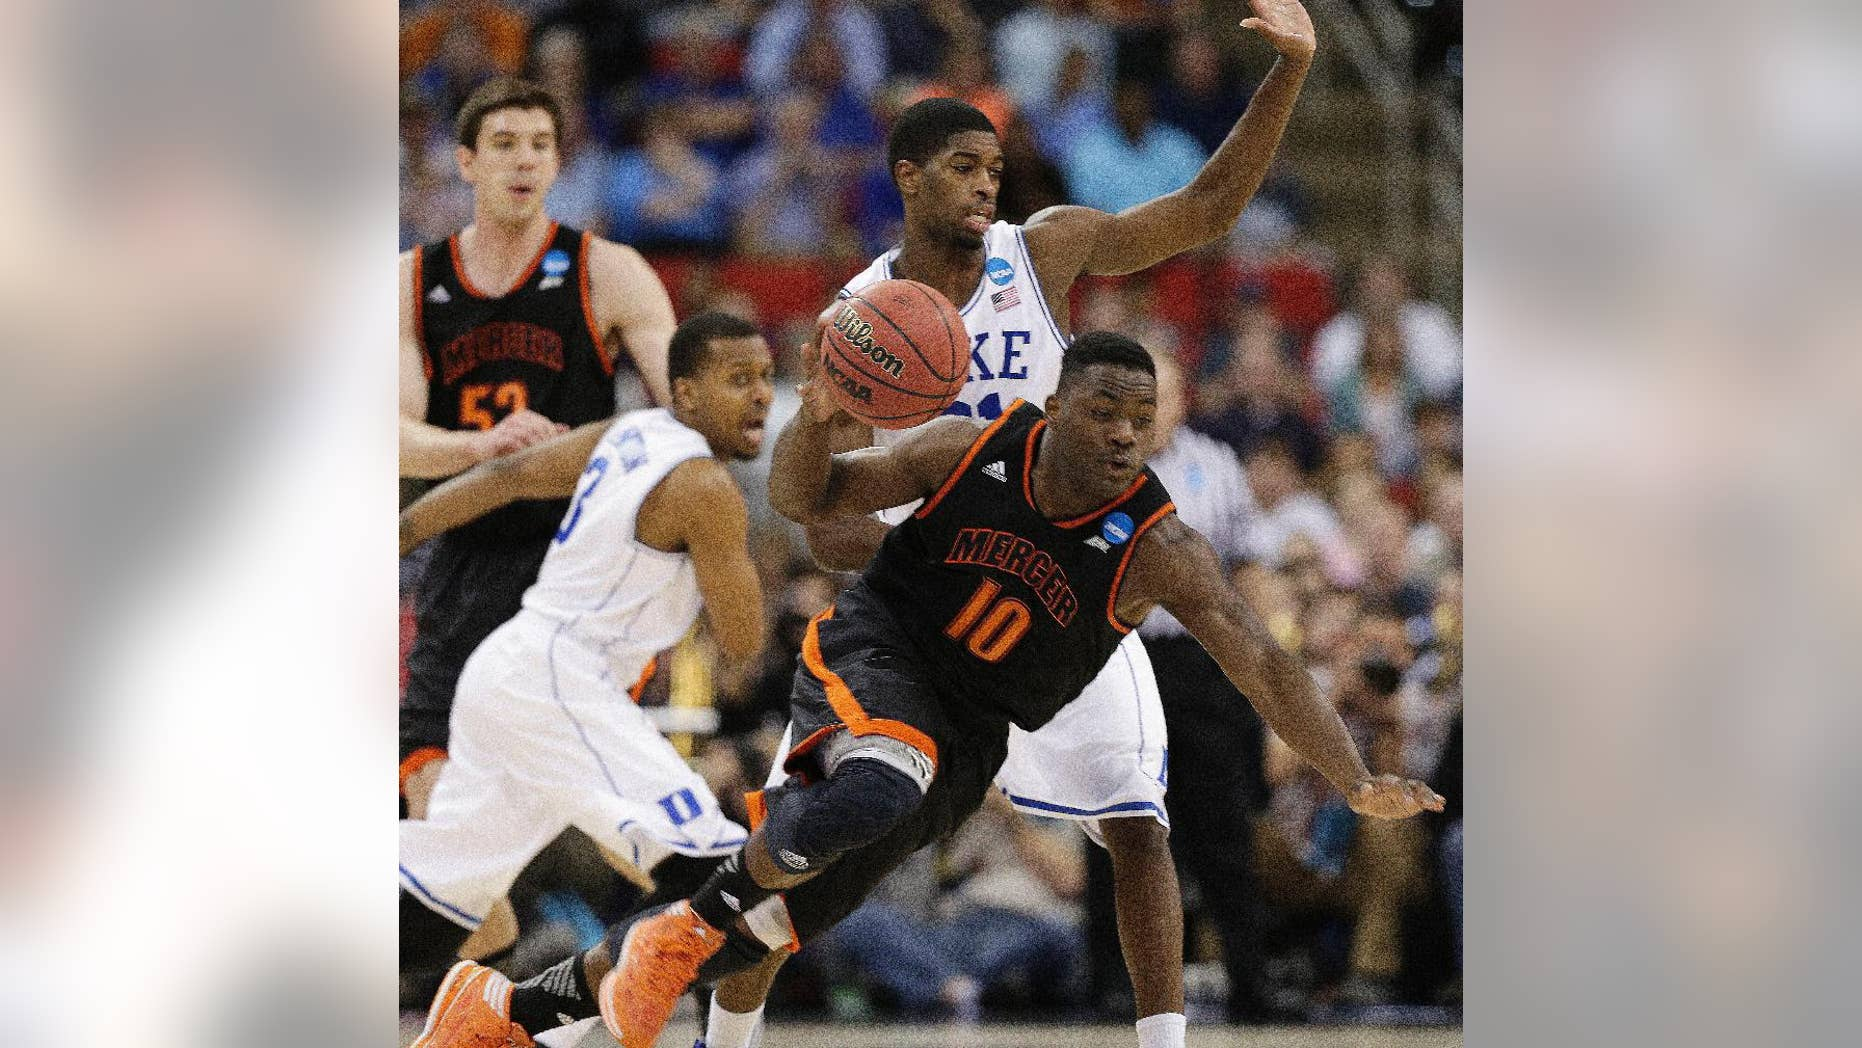 Mercer guard Ike Nwamu (10) moves the ball against Duke forward Amile Jefferson (21) during the second half of an NCAA college basketball second-round game, Friday, March 21, 2014, in Raleigh, N.C. (AP Photo/Chuck Burton)